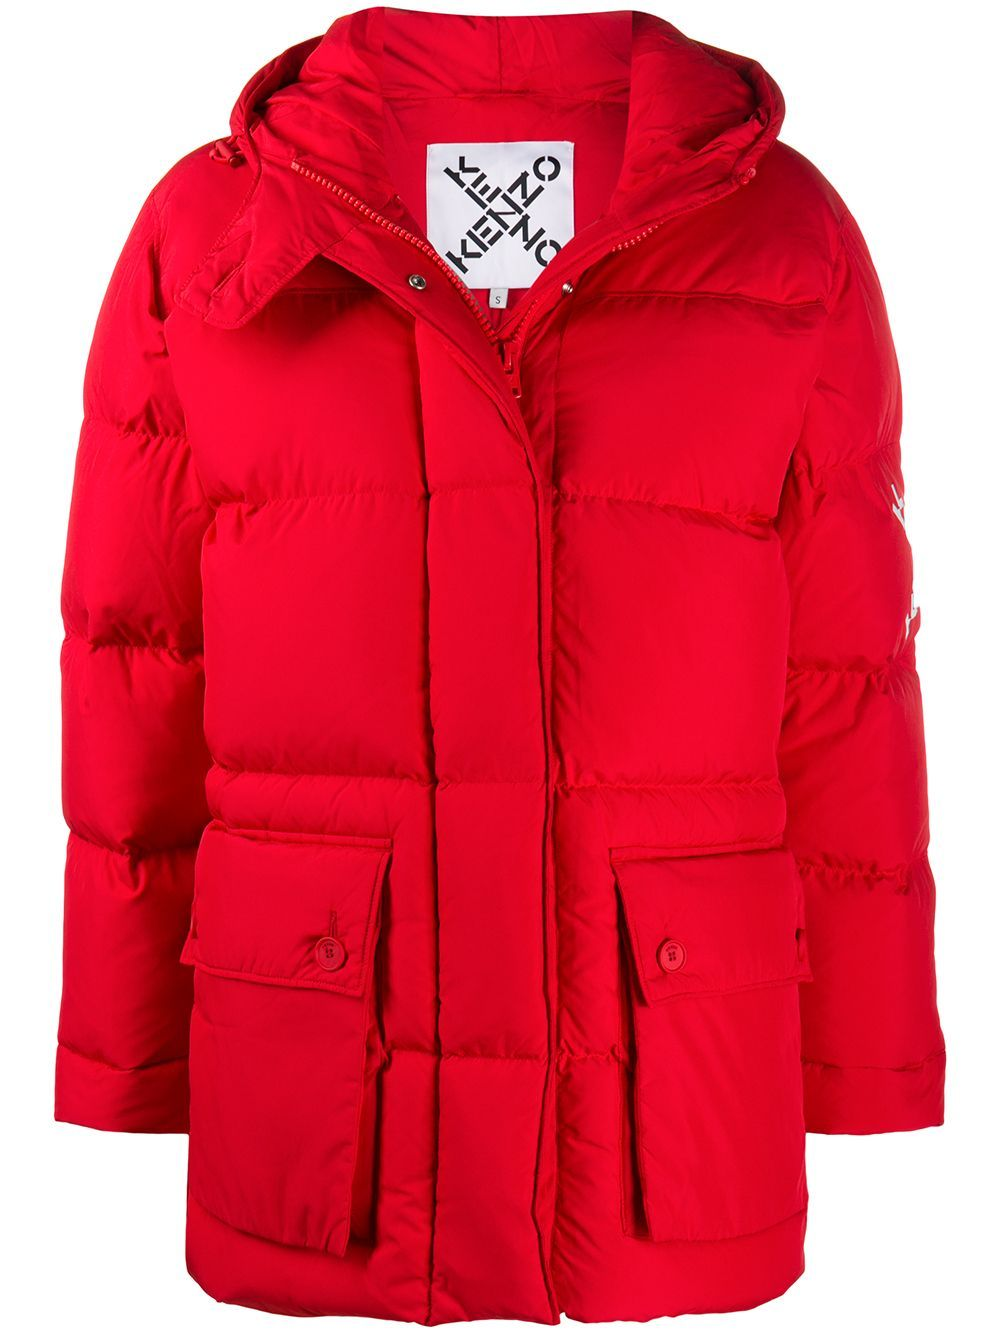 Kenzo Downs KENZO WOMEN'S RED POLYESTER DOWN JACKET